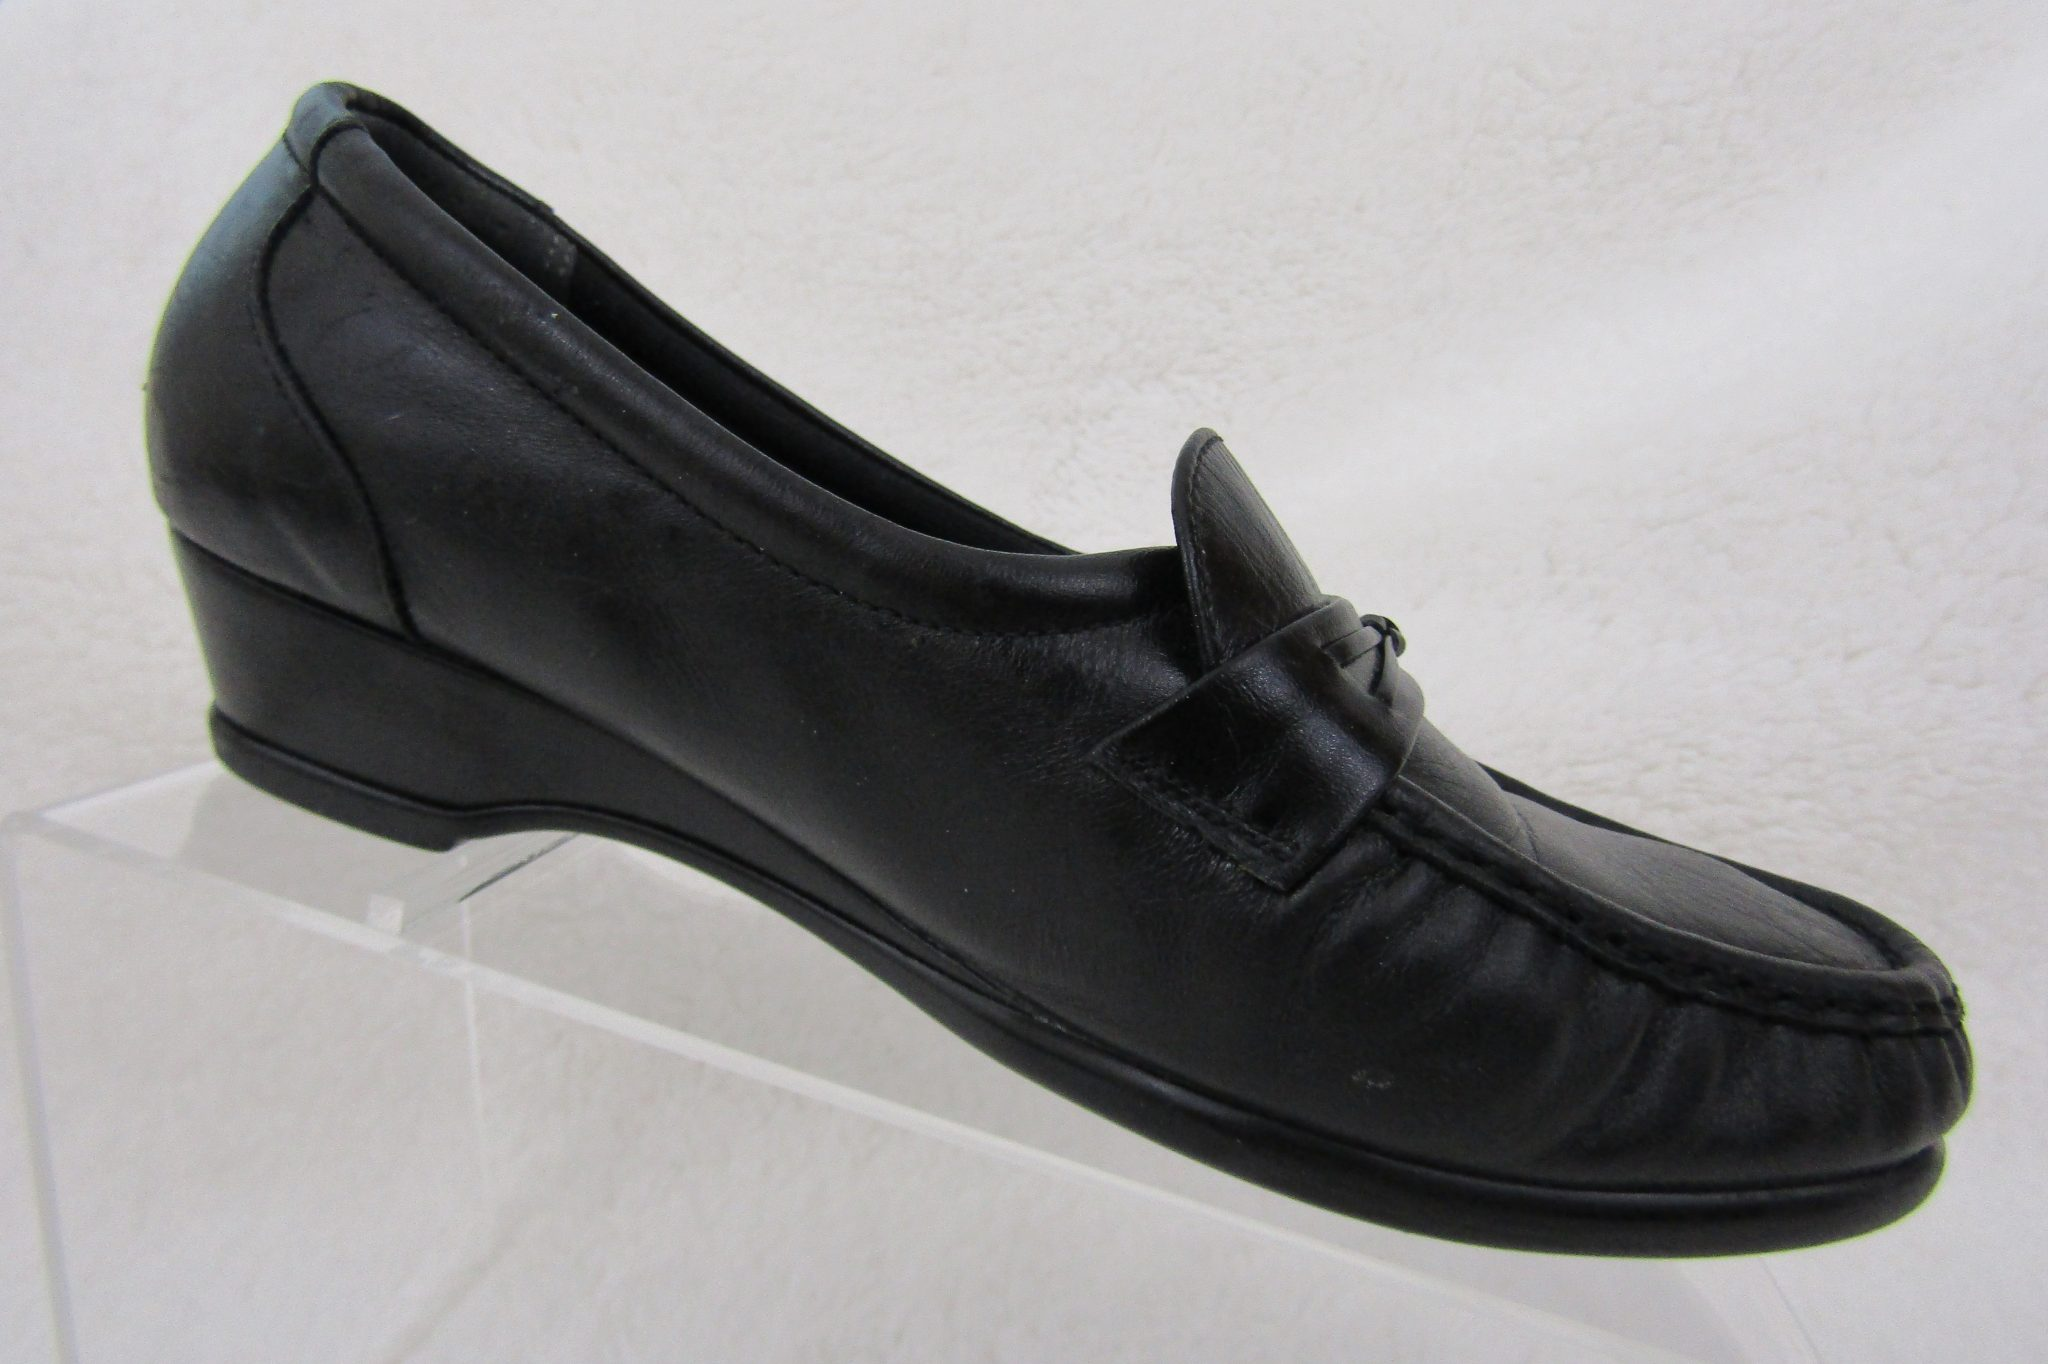 6b99805af2f WOMENS SAS USA W BLACK LEATHER SLIP-ON LOAFER SHOES 7.5 Wide Miriam s  Boutique.